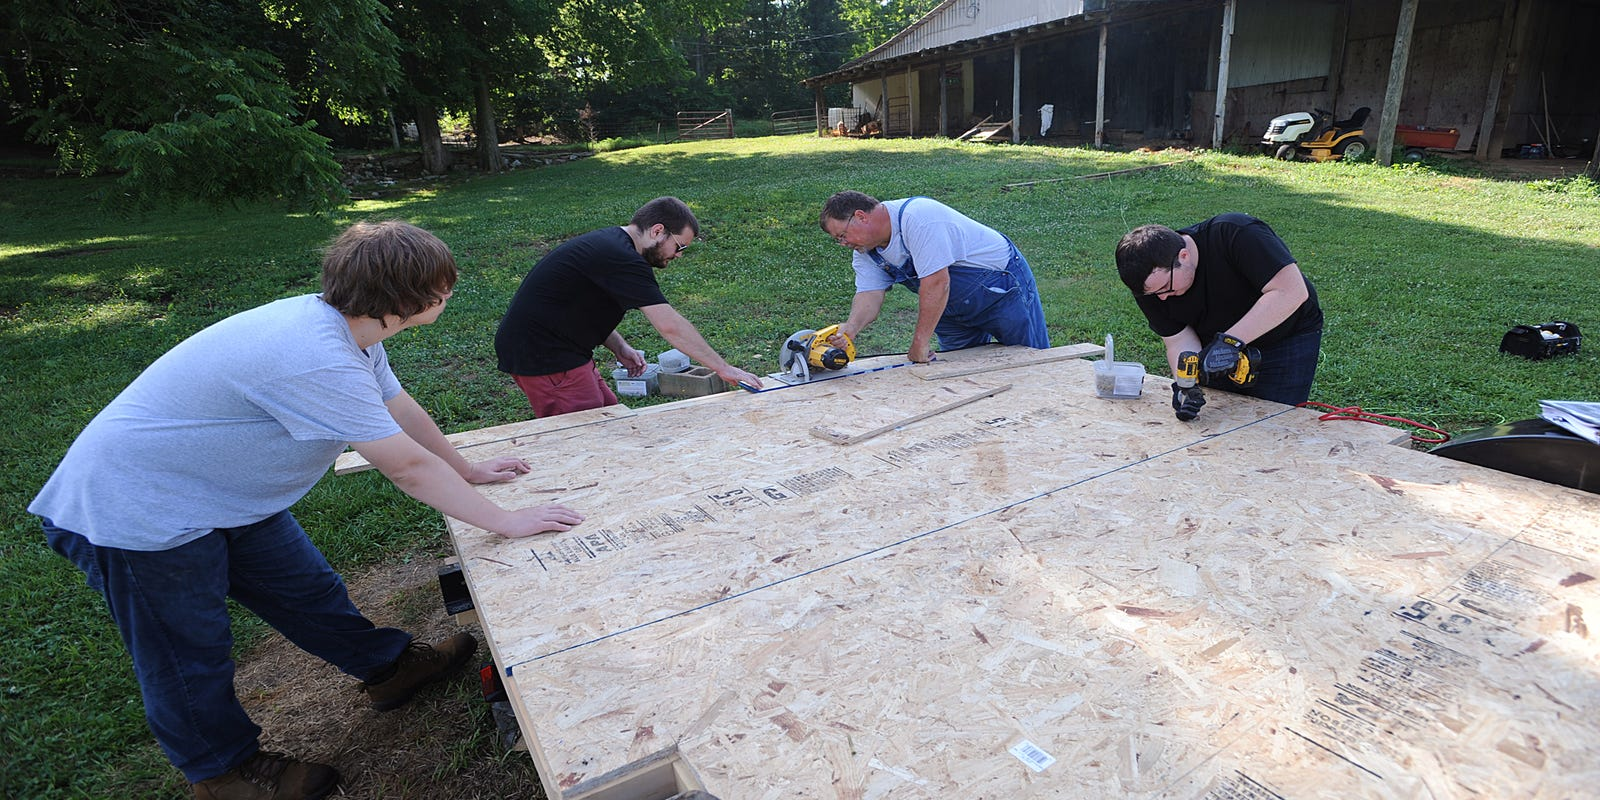 'Tiny house' movement comes to Louisville